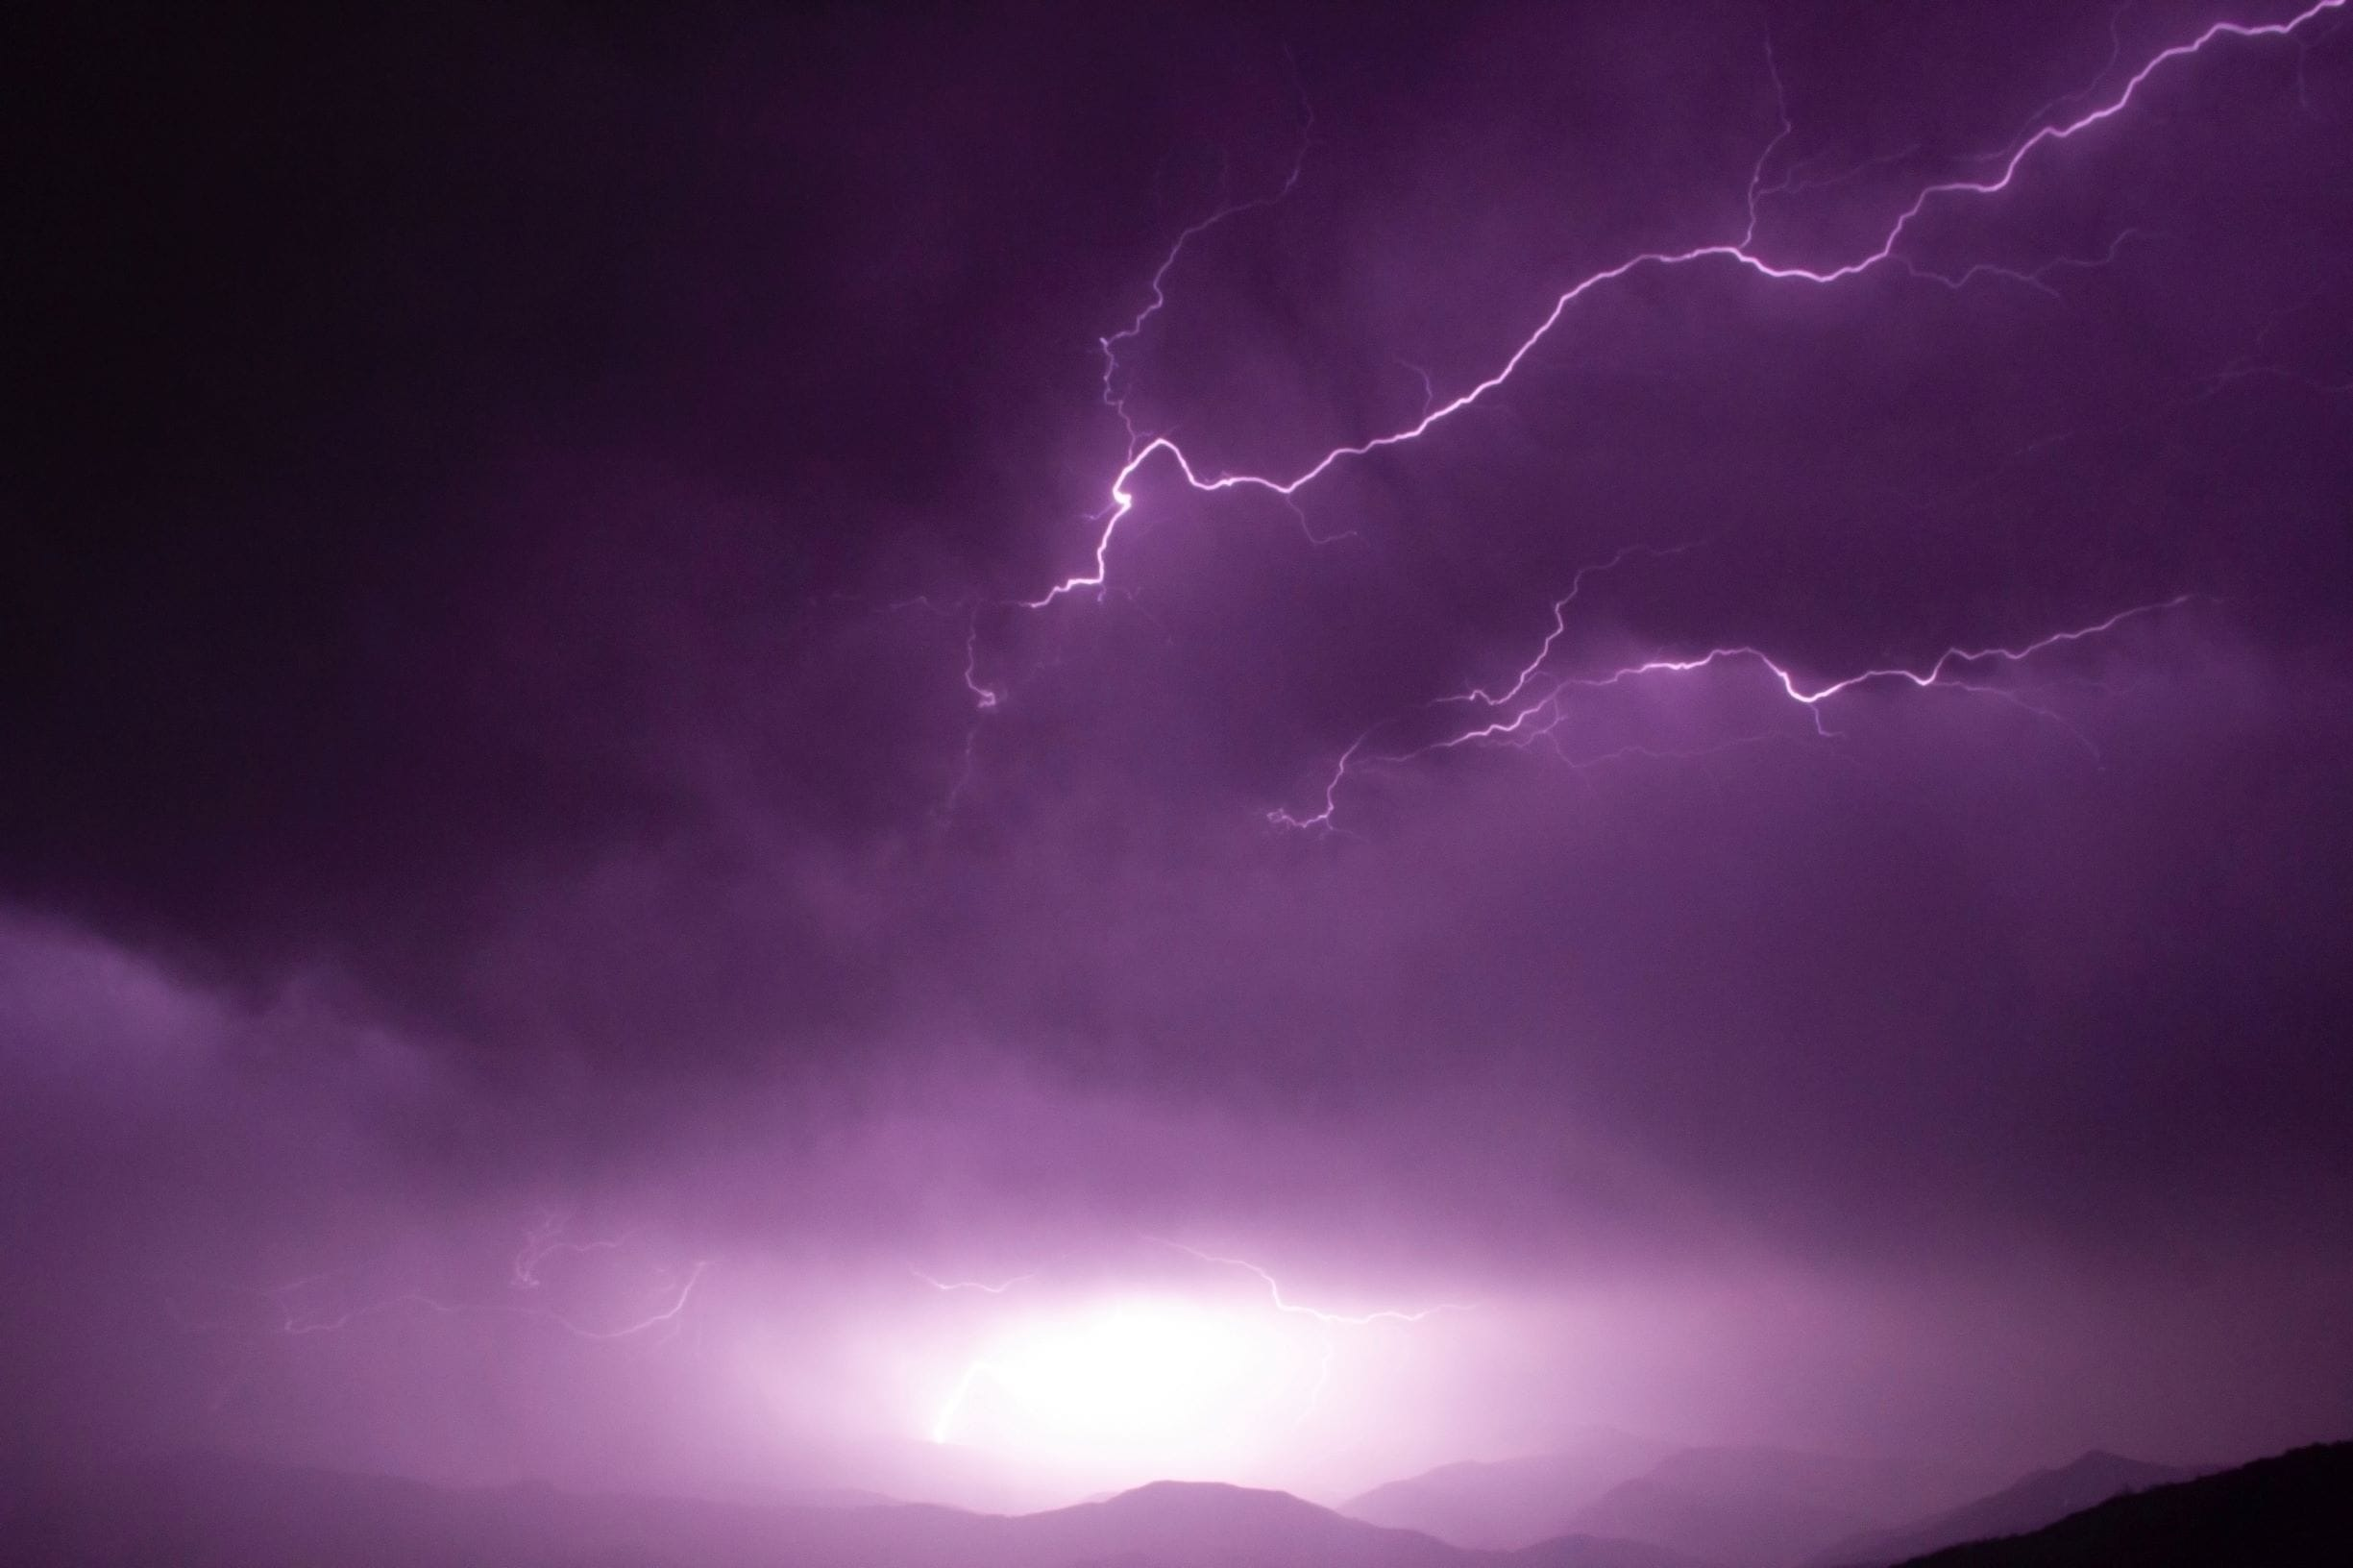 purple storm clouds and lightning over mountains